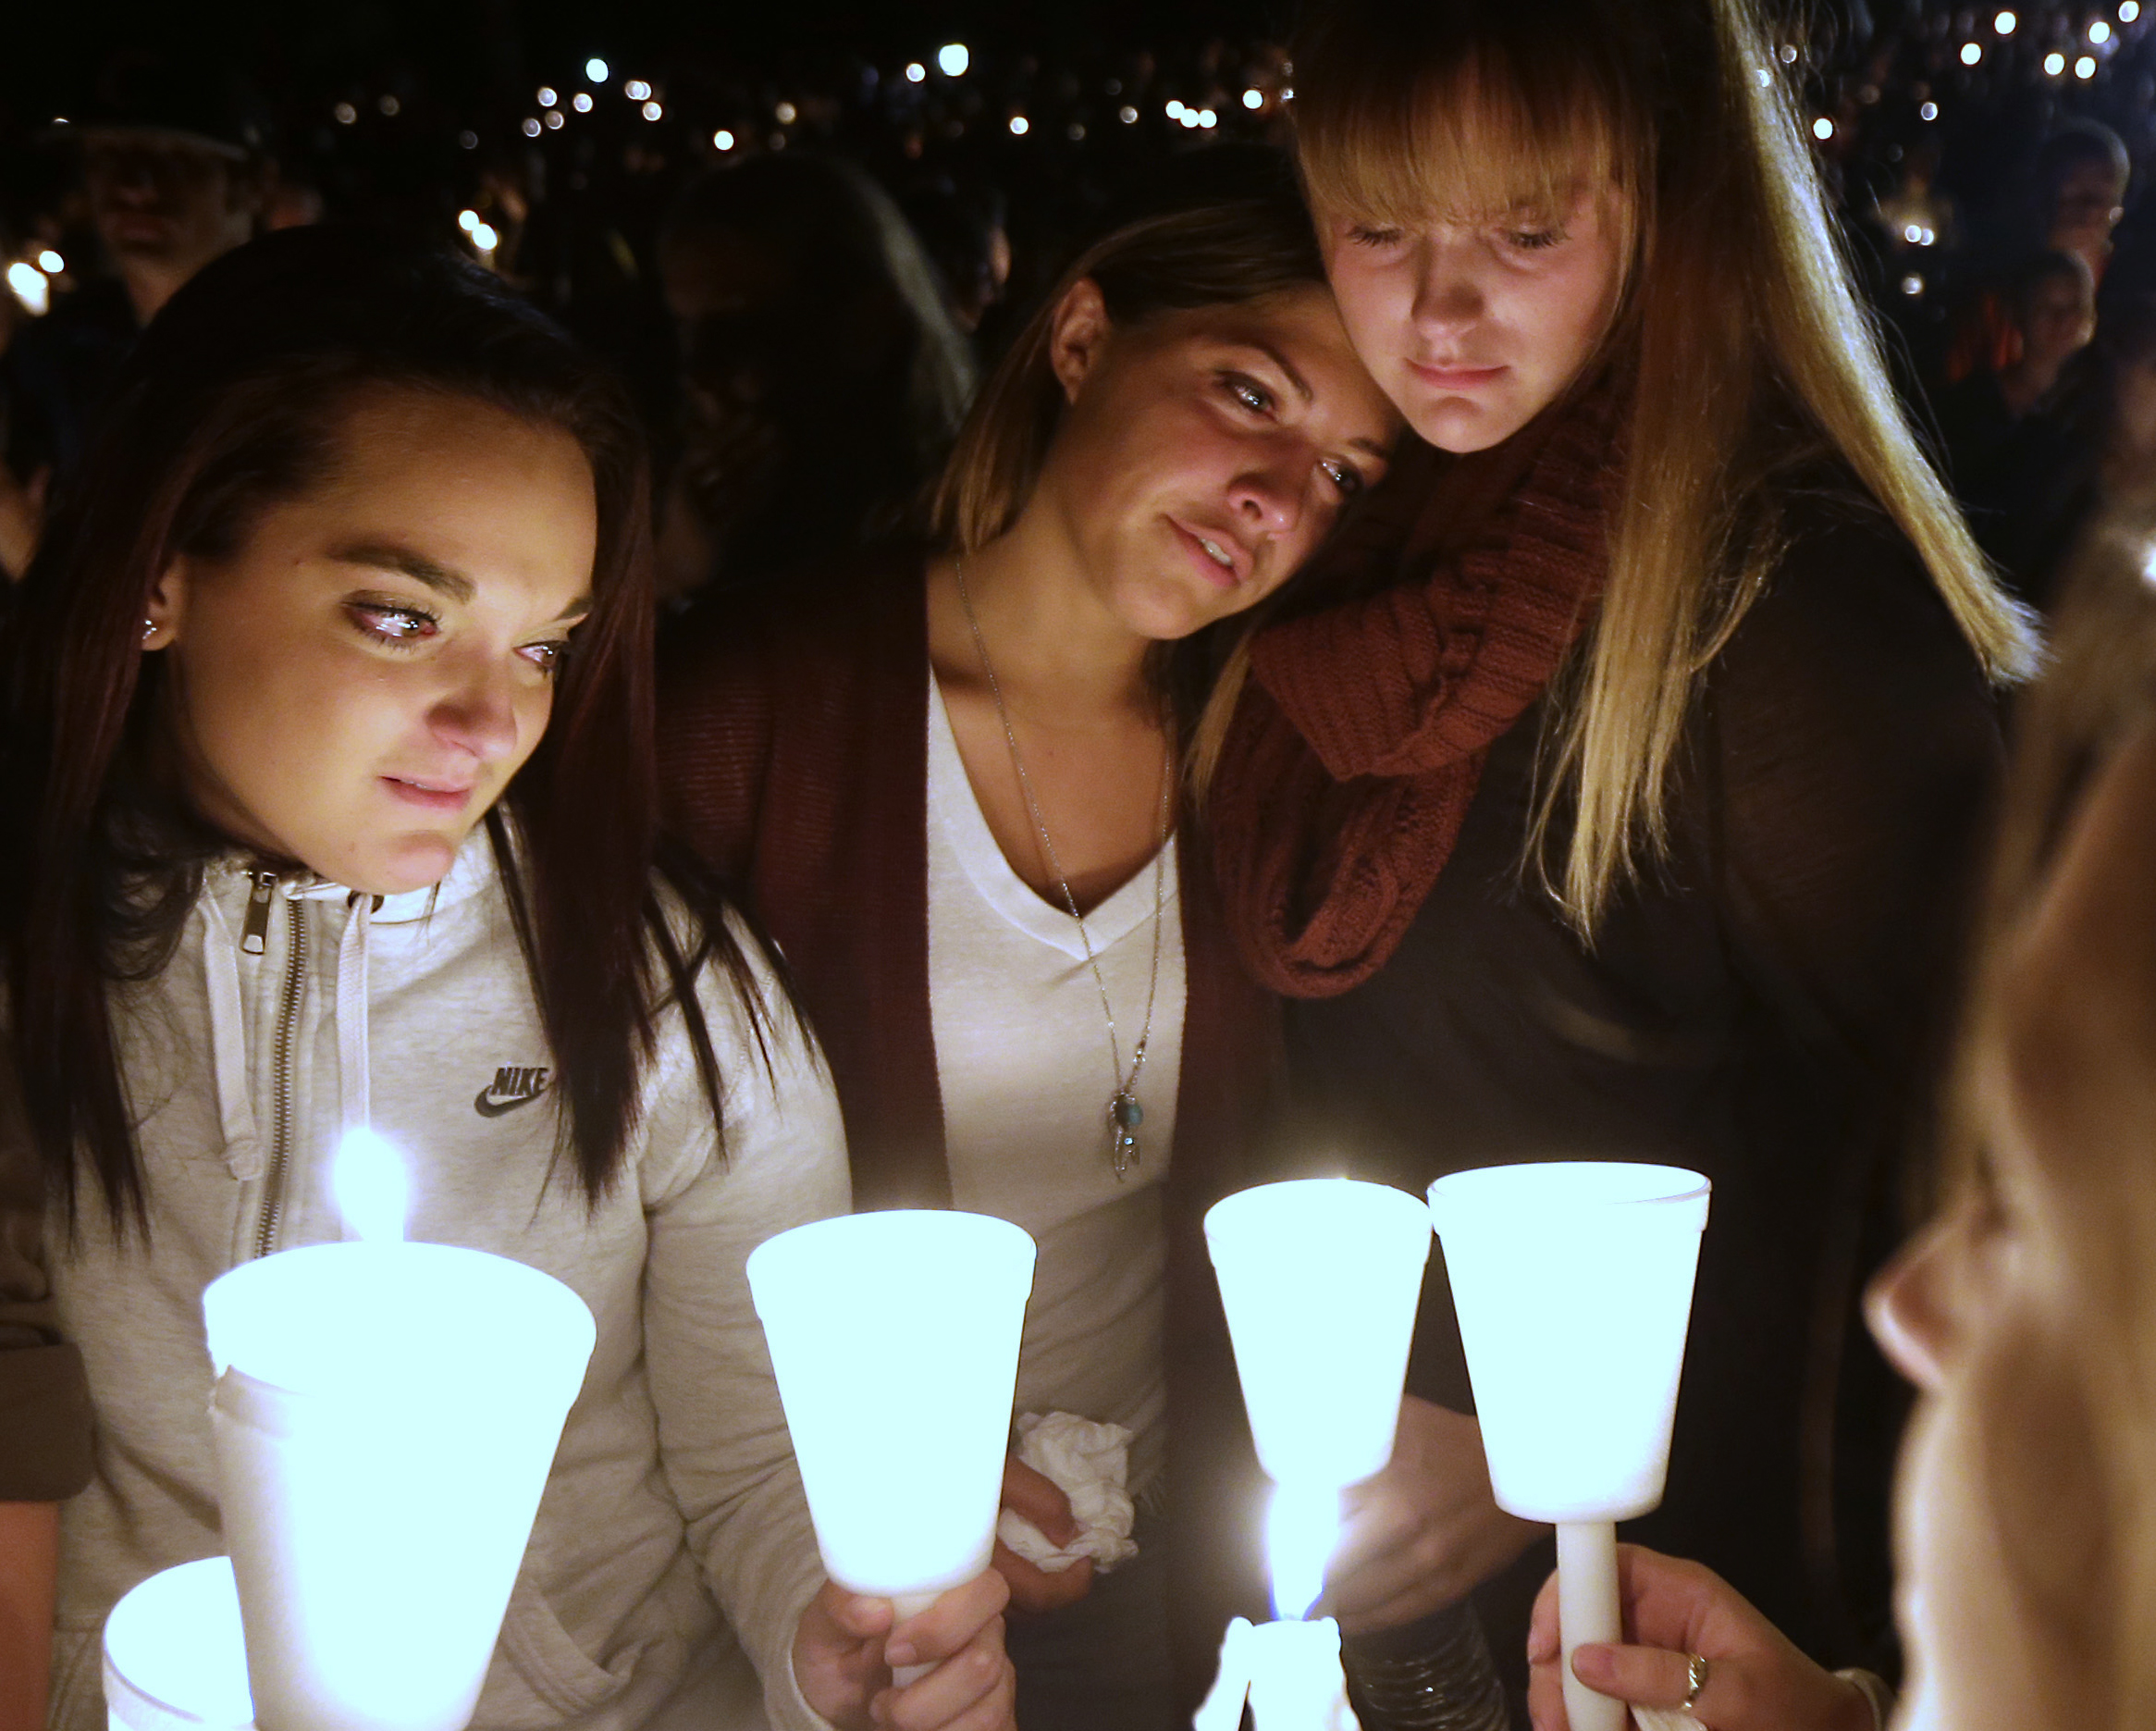 Umpqua Community College students Nicole Zamarripa, left, Kristen Sterner, center and Carrissa Welding, right, join others at Stewart Park, in Roseburg, Ore., for a candlelight vigil for those killed during a fatal shooting at the school Thursday, Oct. 1, 2015. (AP Photo/Rich Pedroncelli)